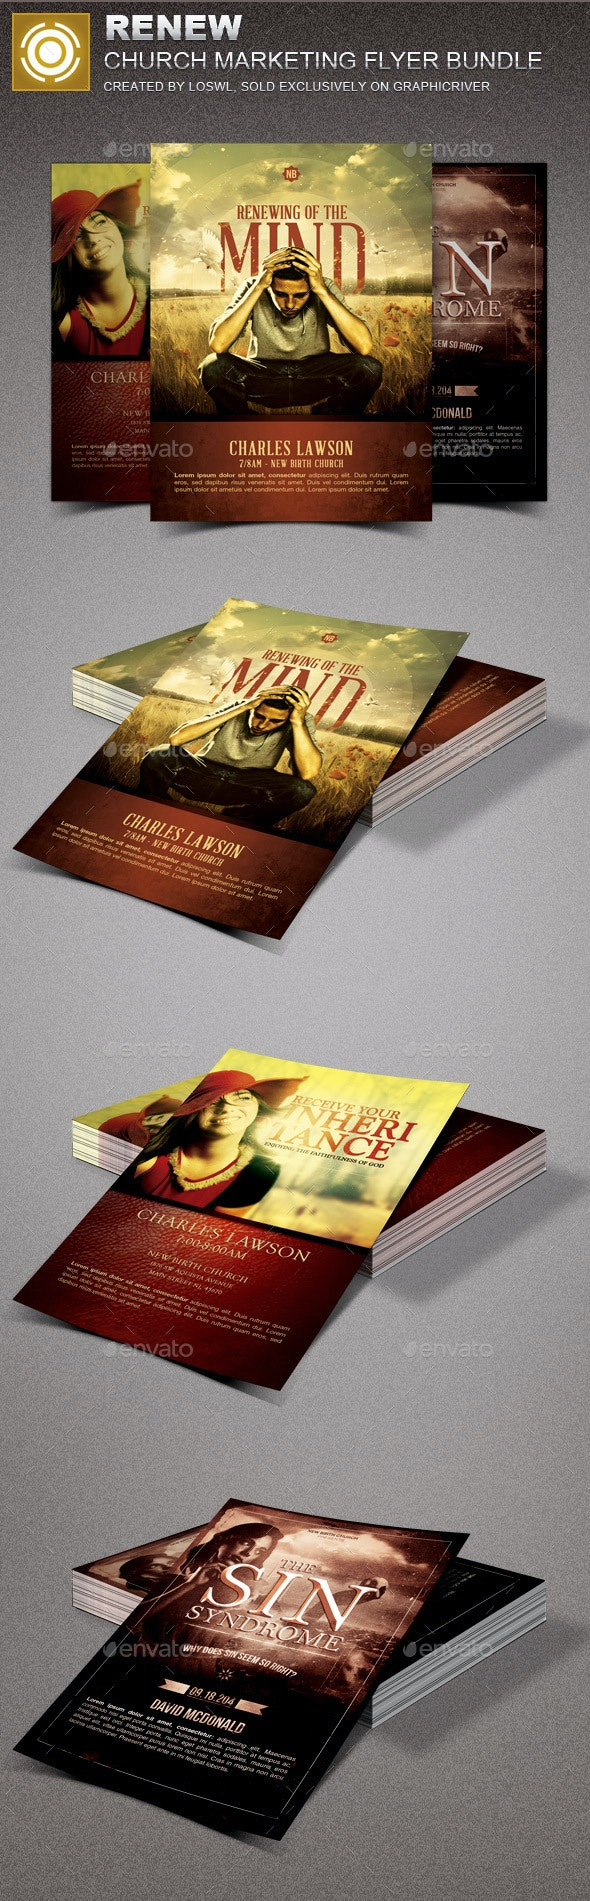 Renew Church Marketing Flyer Template Bundle - Church Flyers